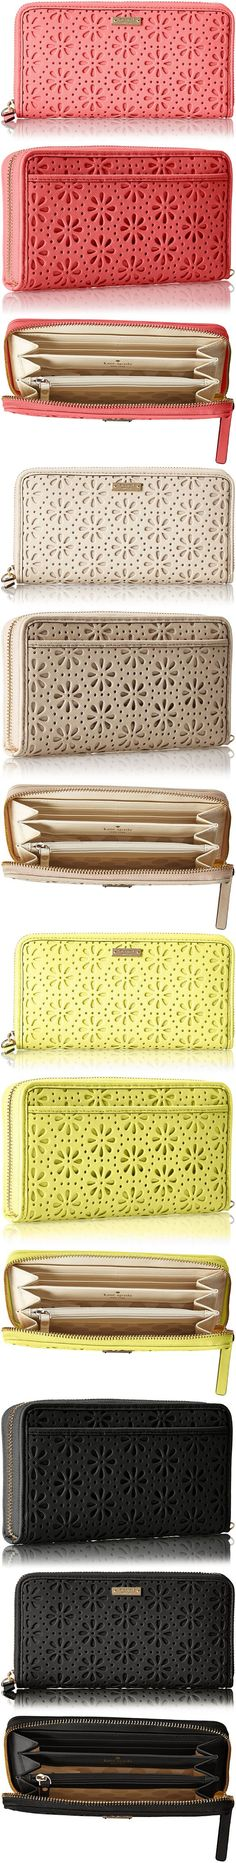 kate spade new york Cedar Street Perforated Lacey Wallet. So adorable!